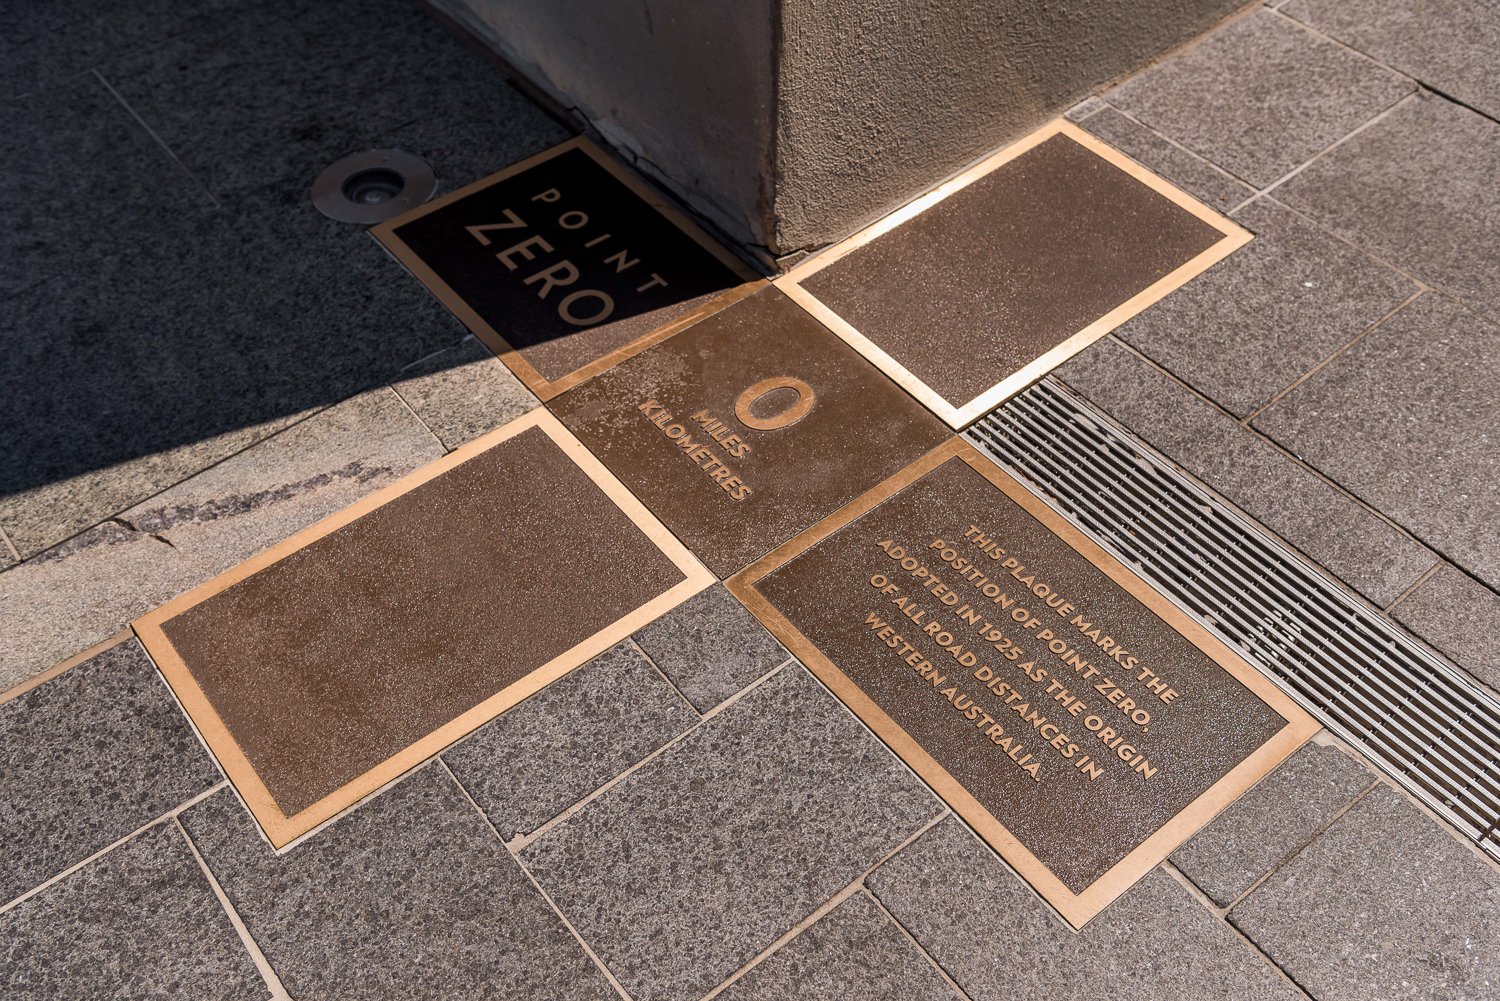 Point Zero - 1 Cathedral Avenue, PerthPoint Zero is the marker from which all distances to and from Perth are measured, and represents the centre point and civic heart of the city.Situated on the south-east corner of the Old Treasury building on the corner of Cathedral Avenue and St Georges Terrace, the marker was chosen during the building's life as the state's first post office.An understated plaque marking the adoption was laid in 1975.